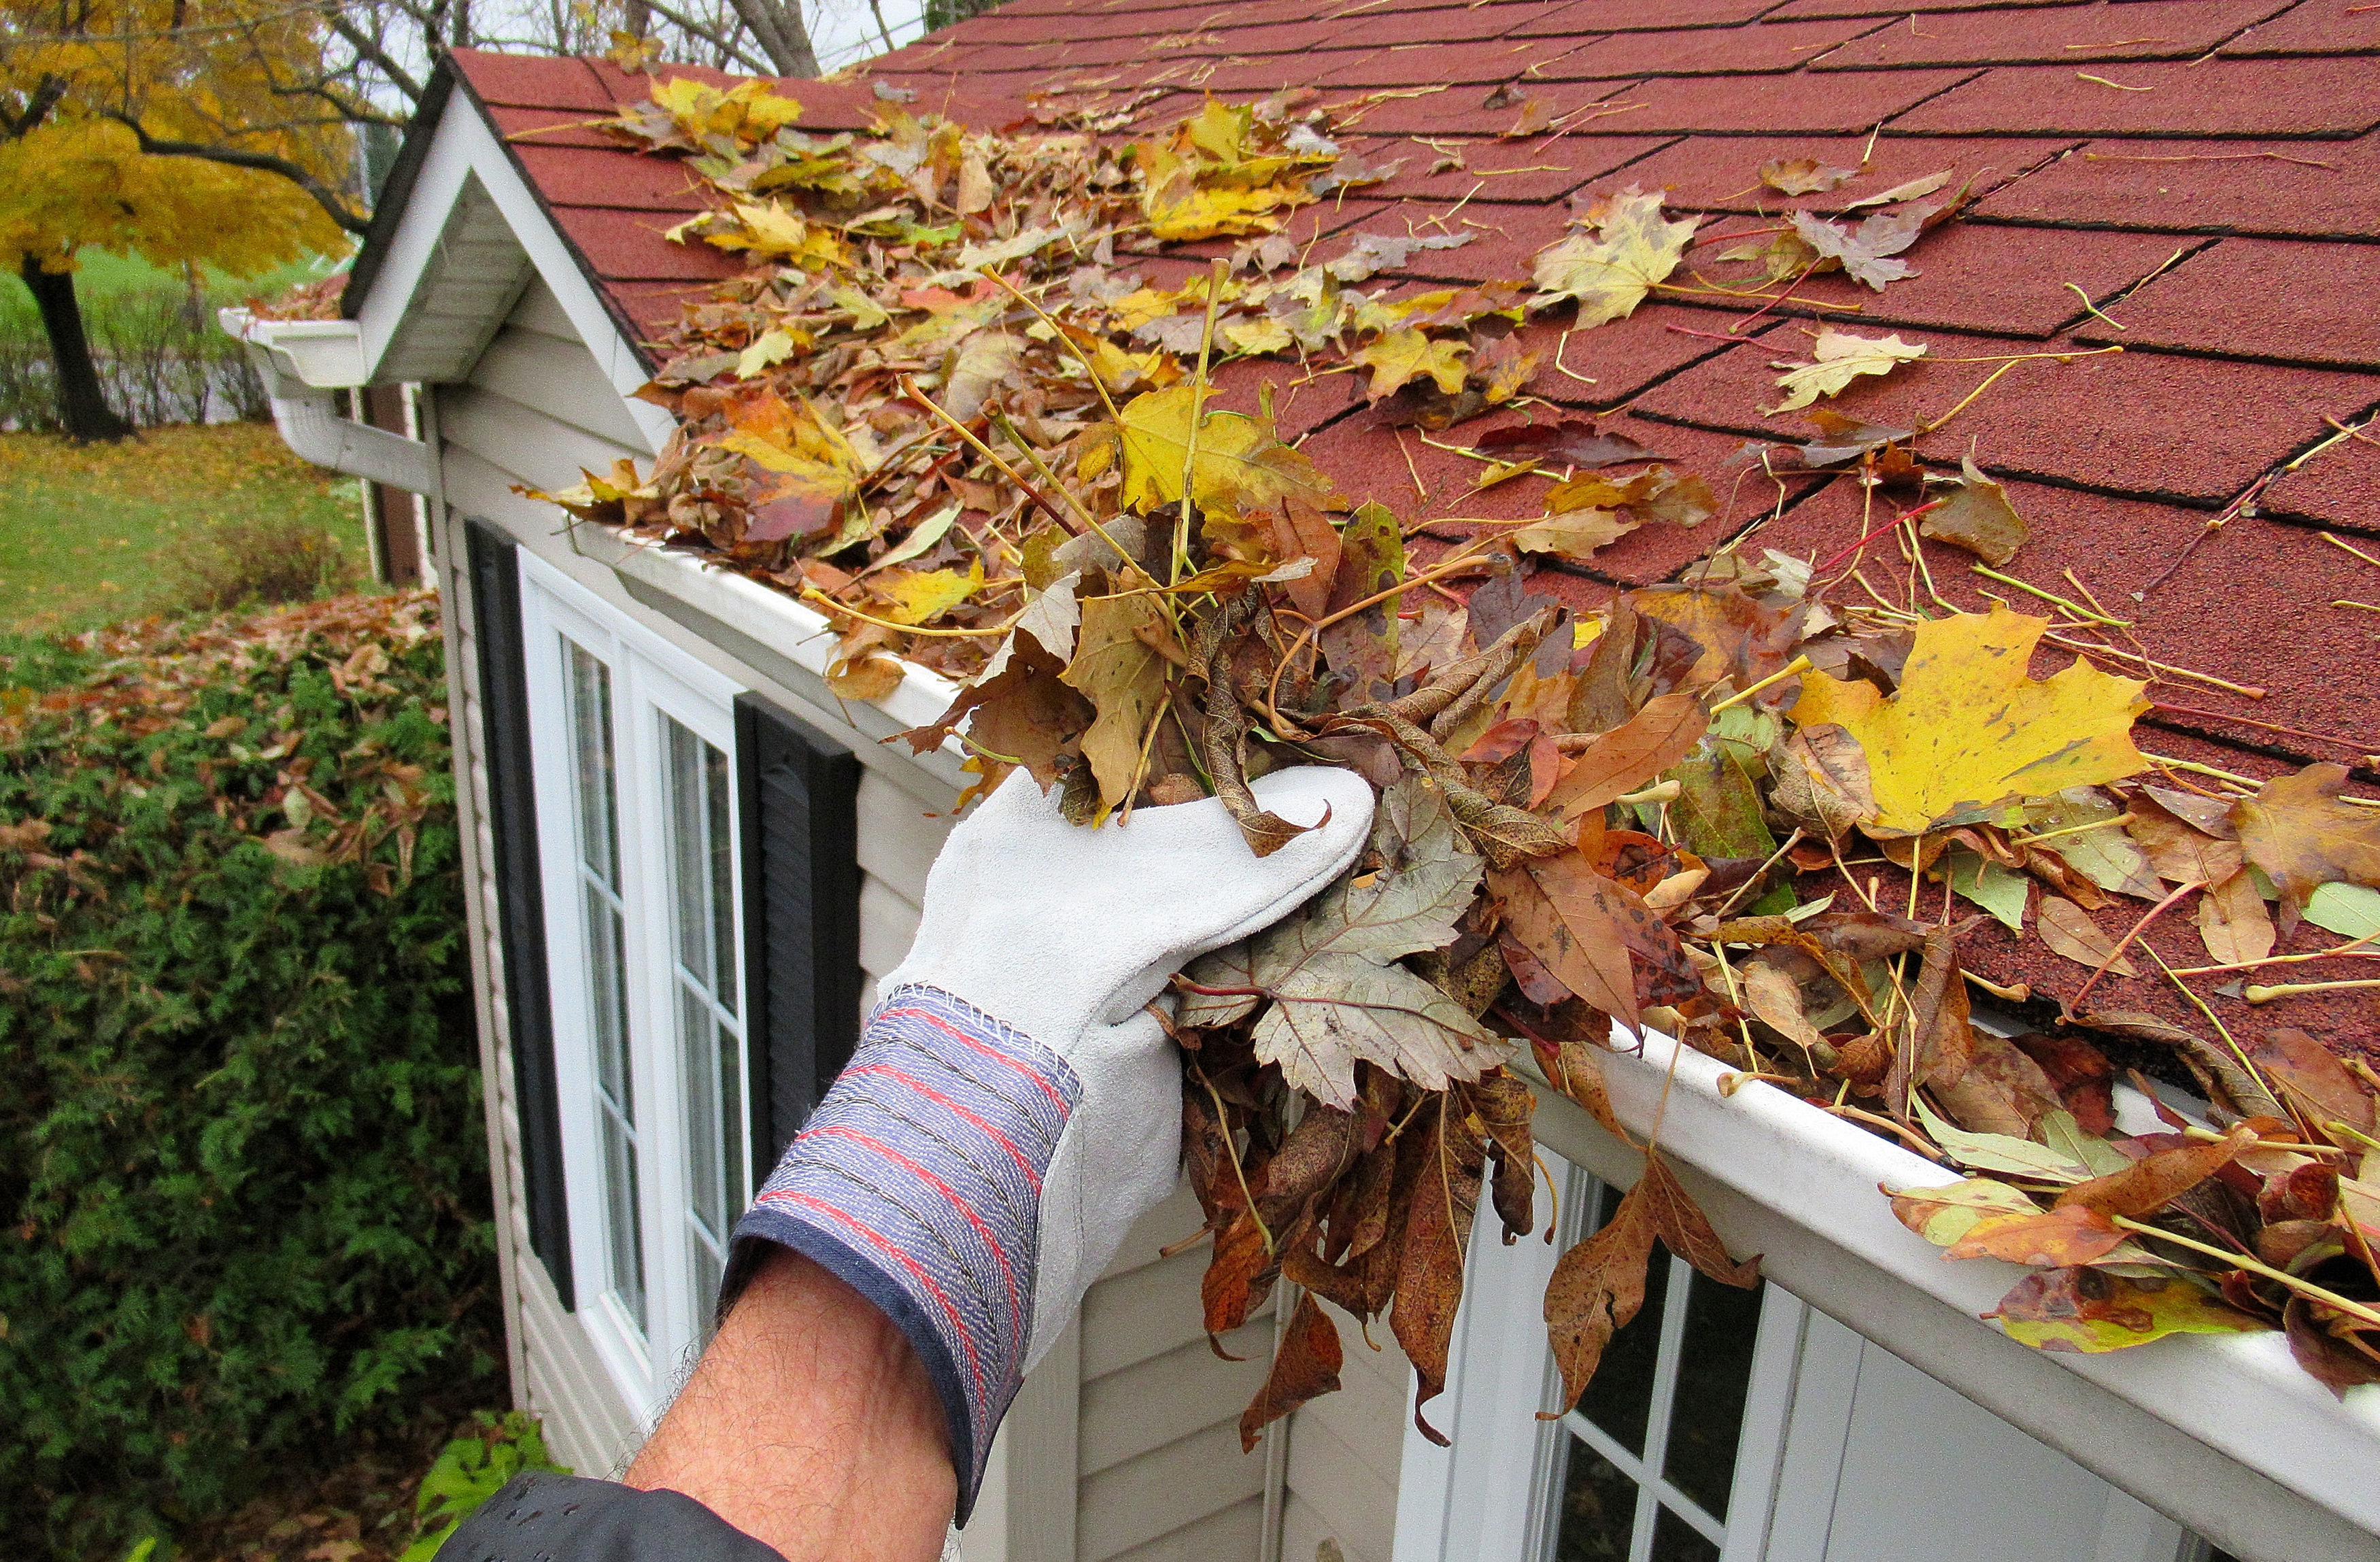 Gutters that are clogged with leaves and debris can cause a lot of issues.